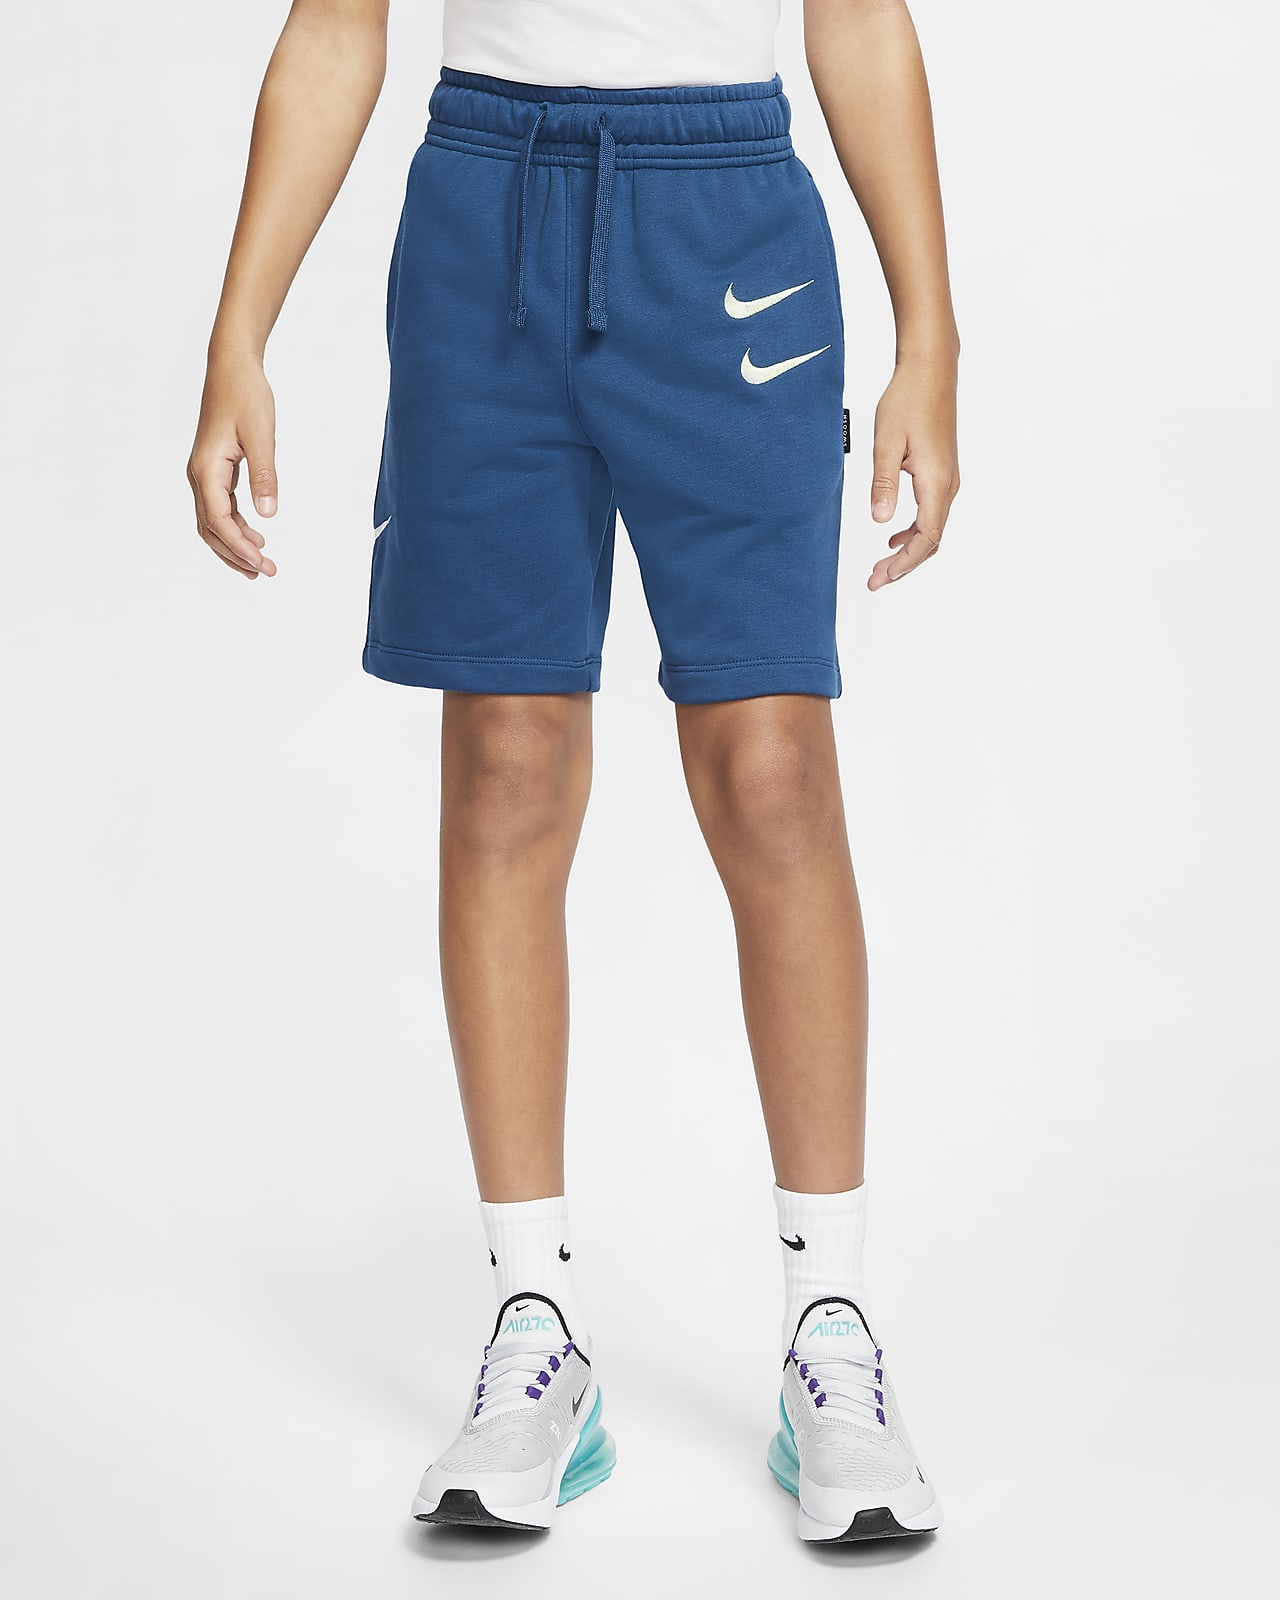 Nike Sportswear Older Kids' (Boys') French Terry Shorts